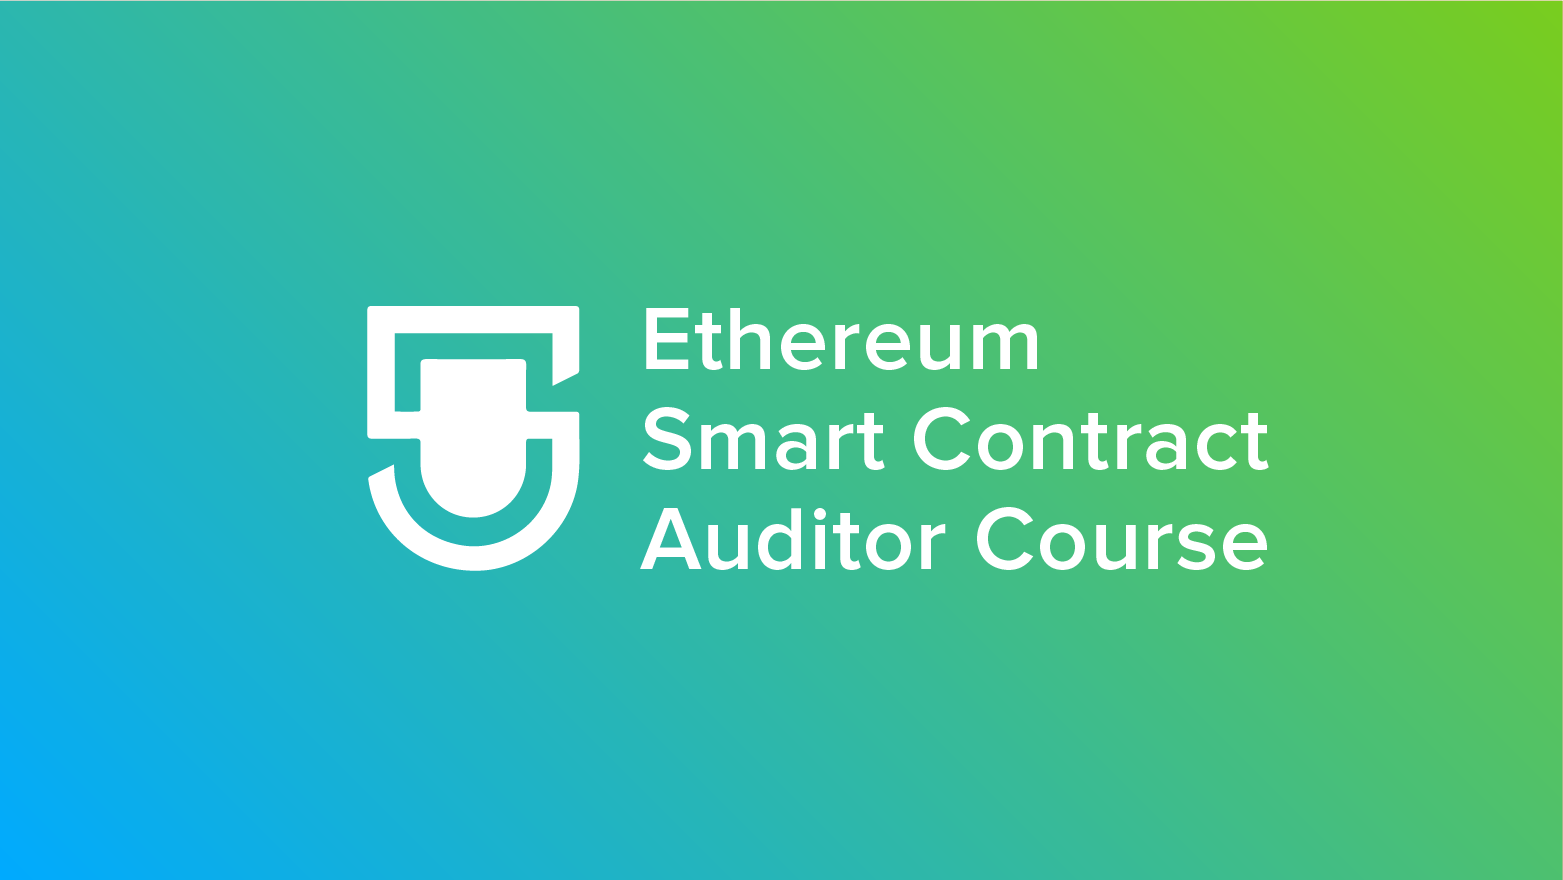 SOLIDIFIED-ETH-COURSE Ethereum Smart Contract Auditor Course Cover Image